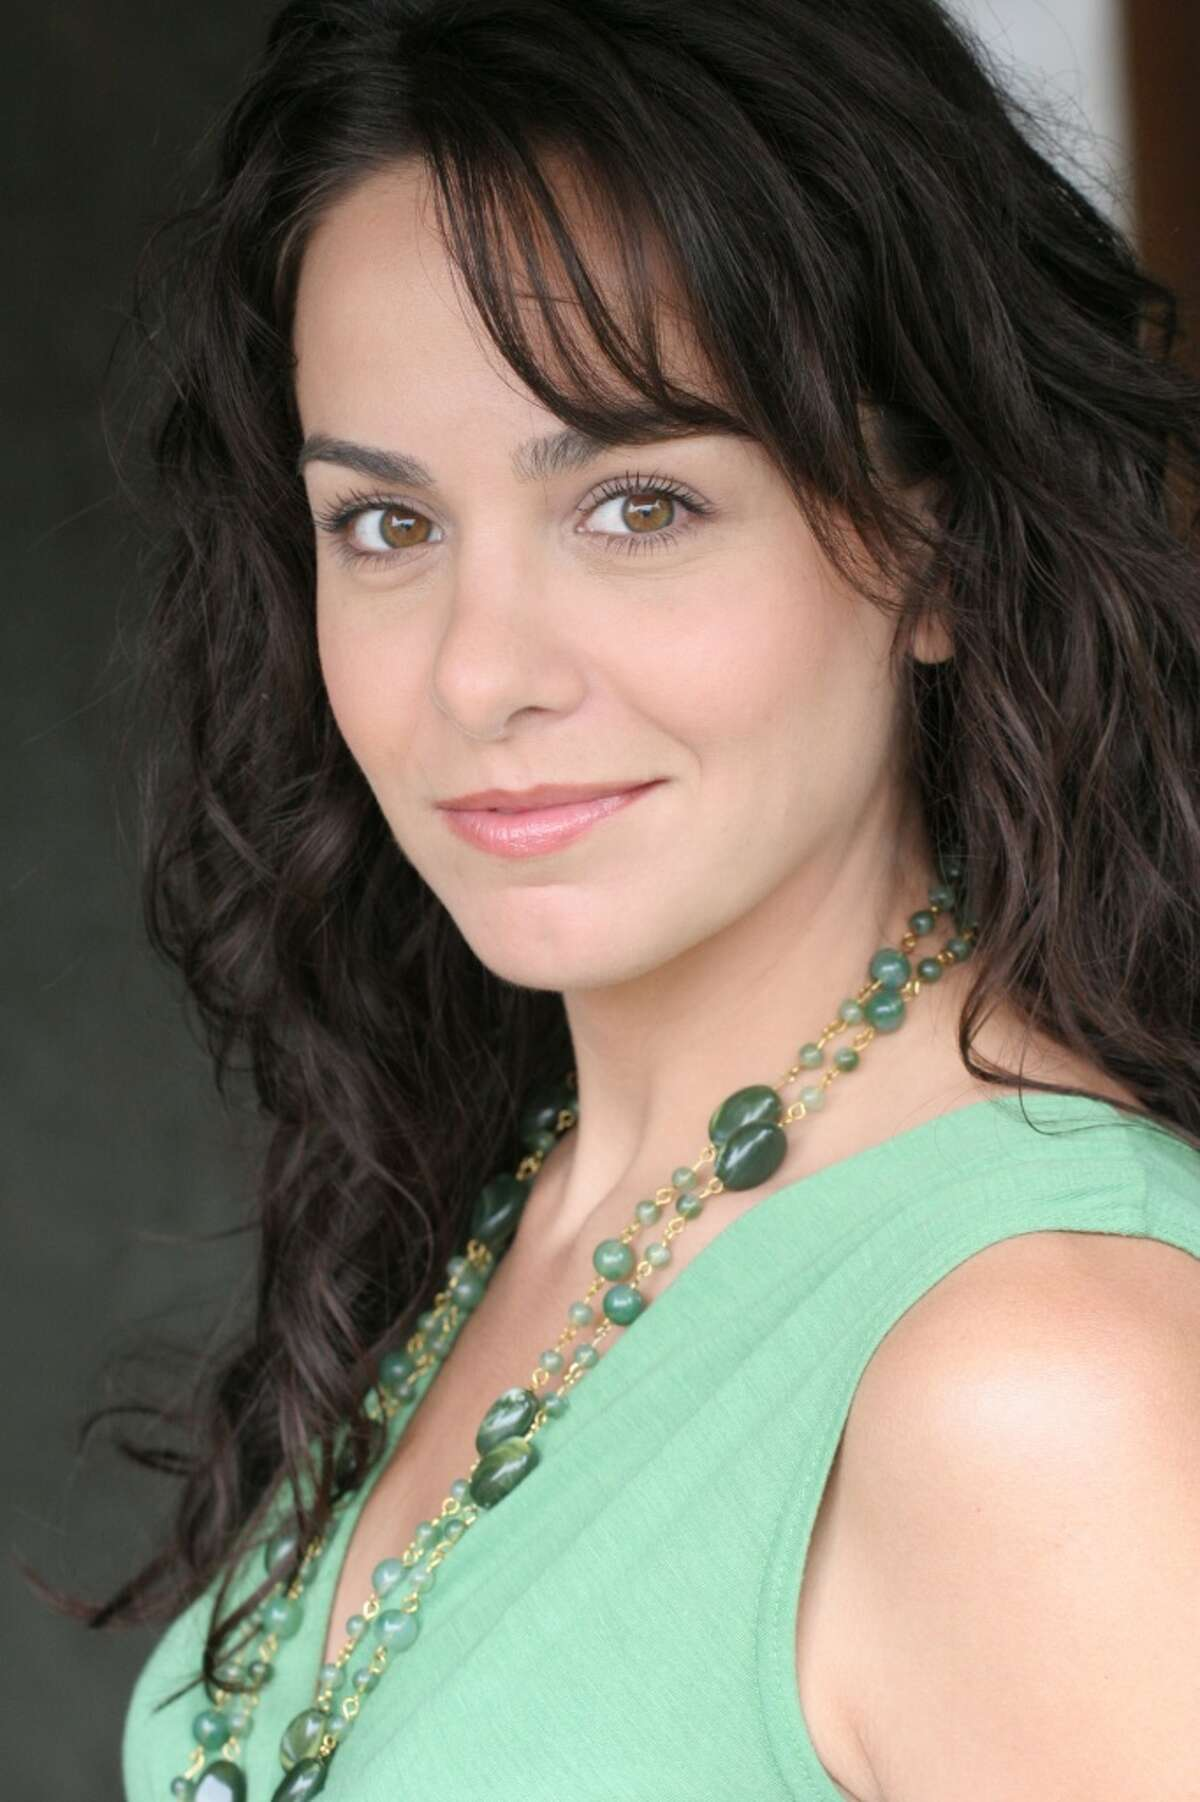 'The Good Night Show' actress and 'Nina's World' executive producer, star Michele Lepe hails from San Antonio and graduated from St. Mary's University.